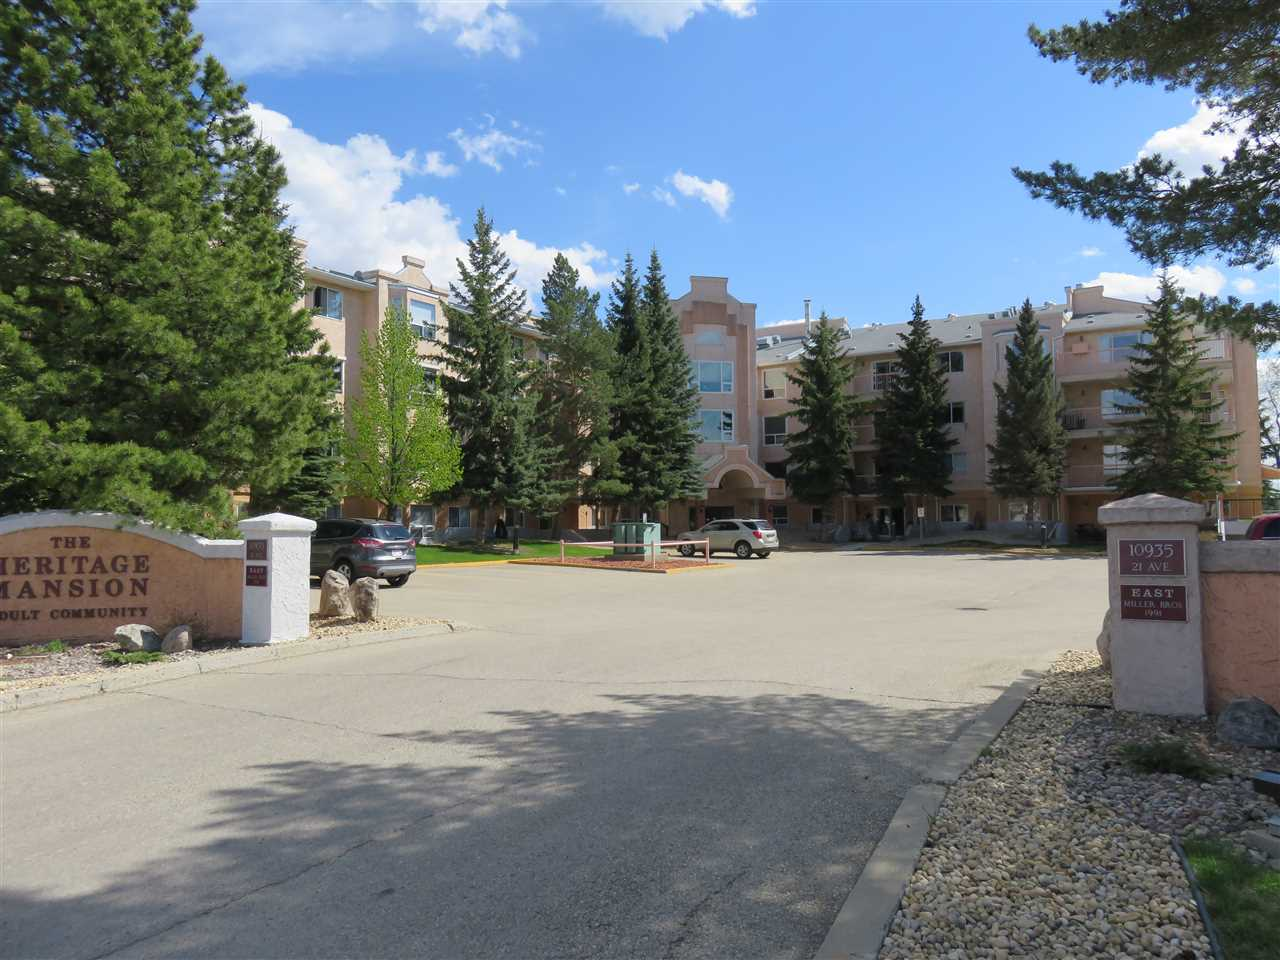 Main Photo: 403 10935 21 Avenue in Edmonton: Zone 16 Condo for sale : MLS(r) # E4067182